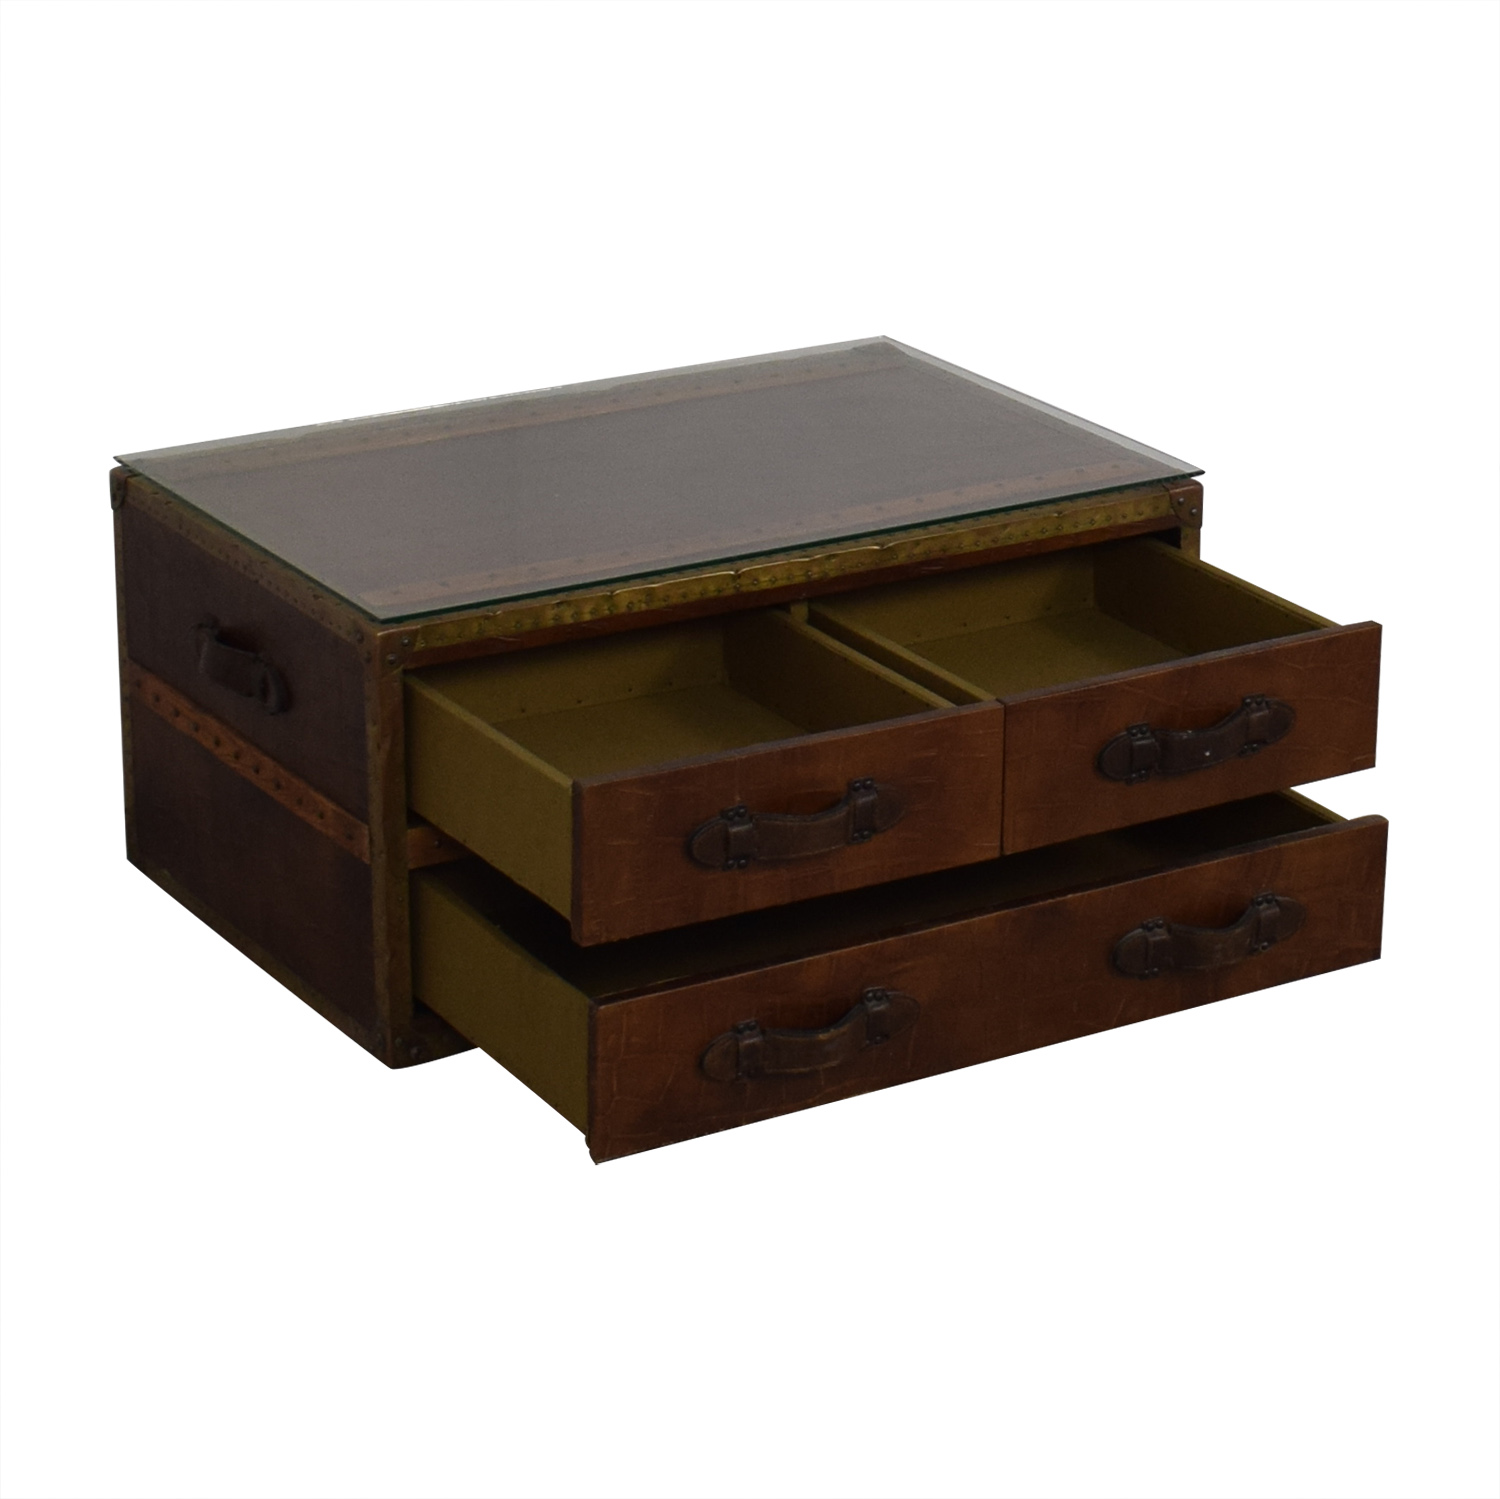 ABC Carpet & Home Steamer Trunk Coffee Table ABC Carpet & Home